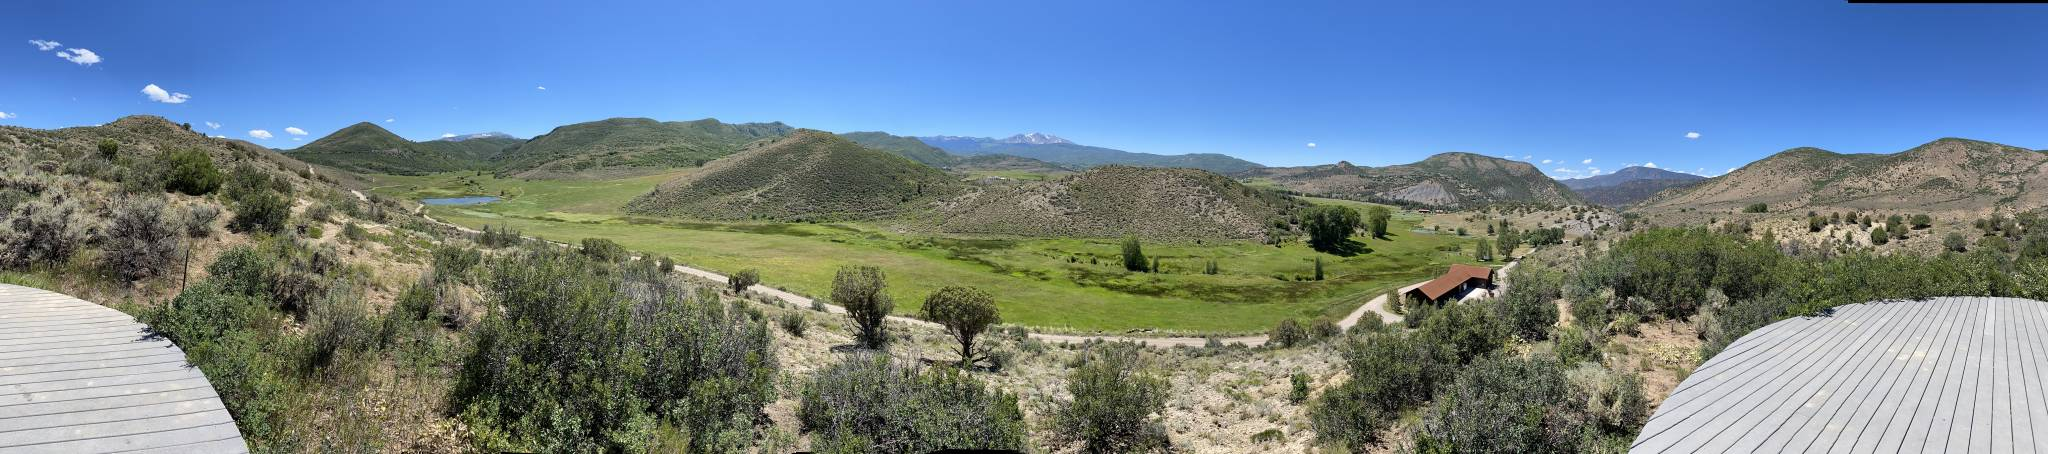 Panoramic View of the Windstar Property